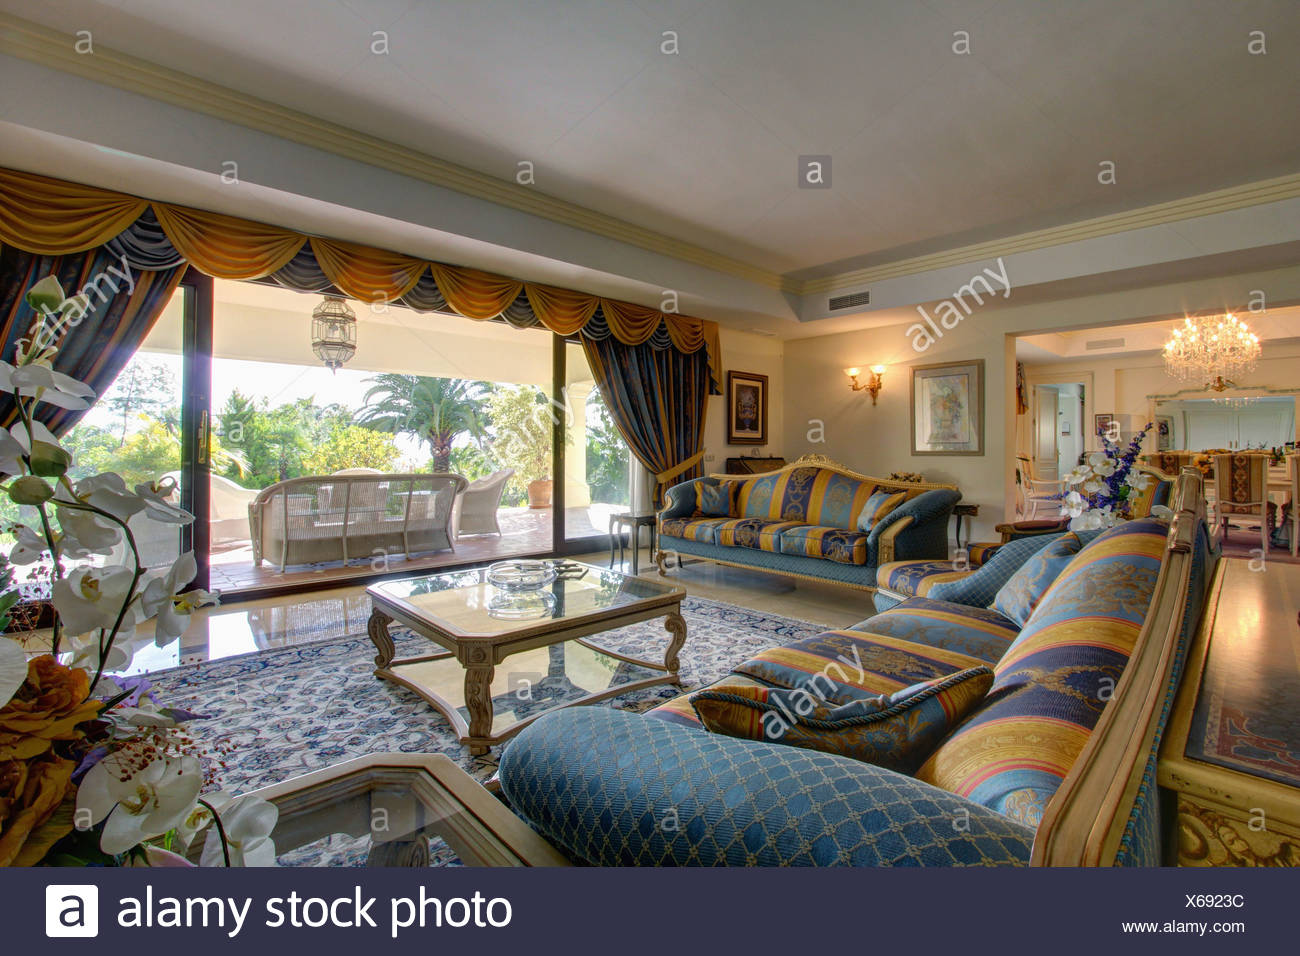 Yellow+blue Patterned Sofa And Matching Drapes On Glass Doors In Spanish  Living Room With Glass Coffee Table